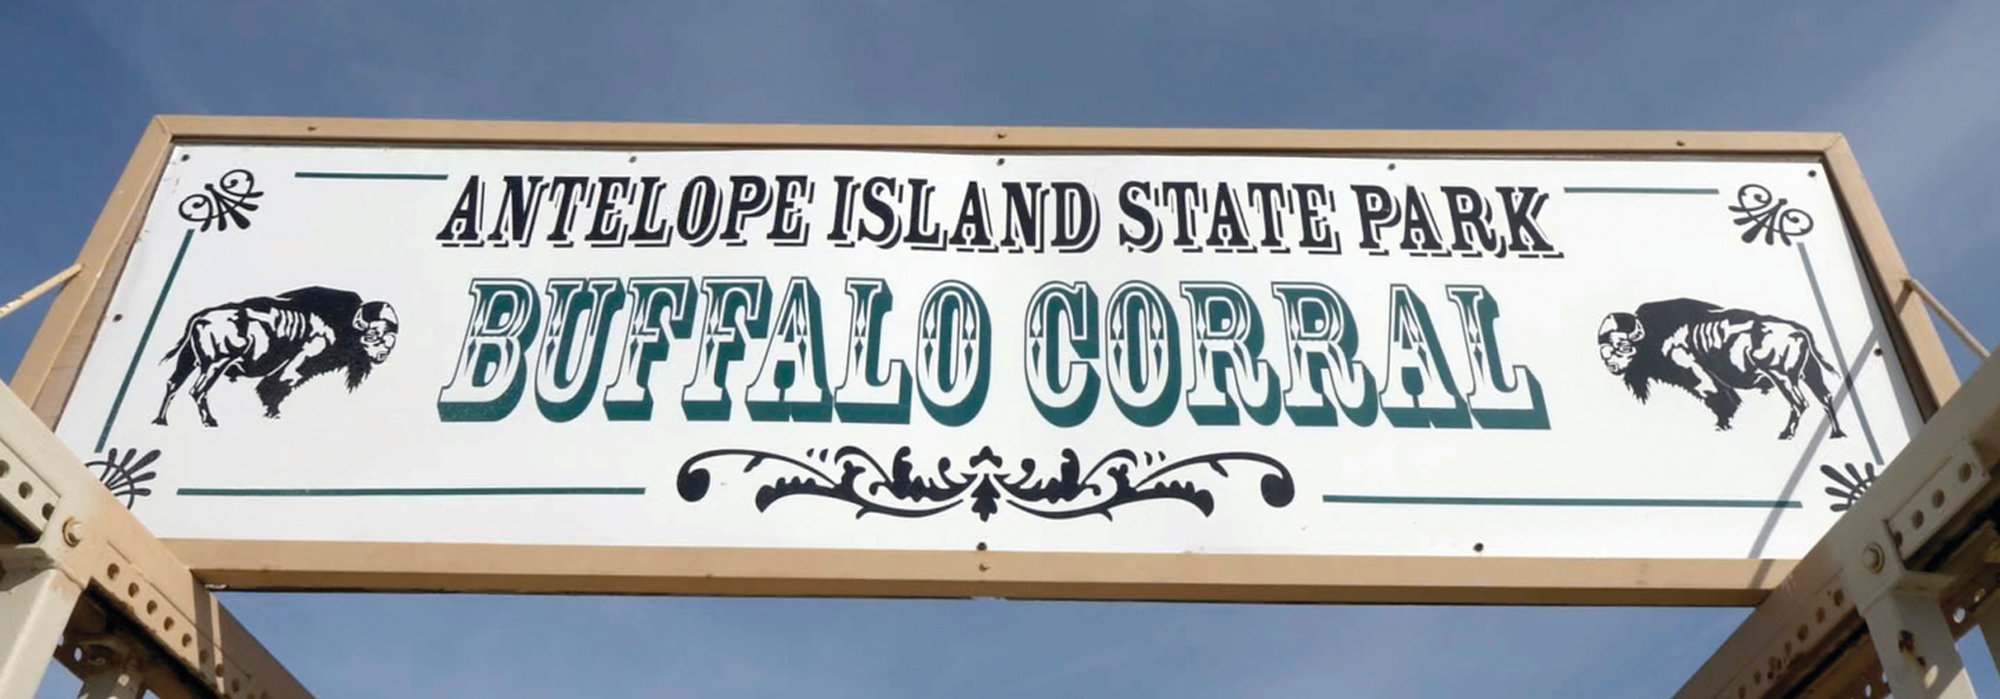 The Buffalo Corral sign is shown during an annual bison roundup, on Antelope Island, Utah.